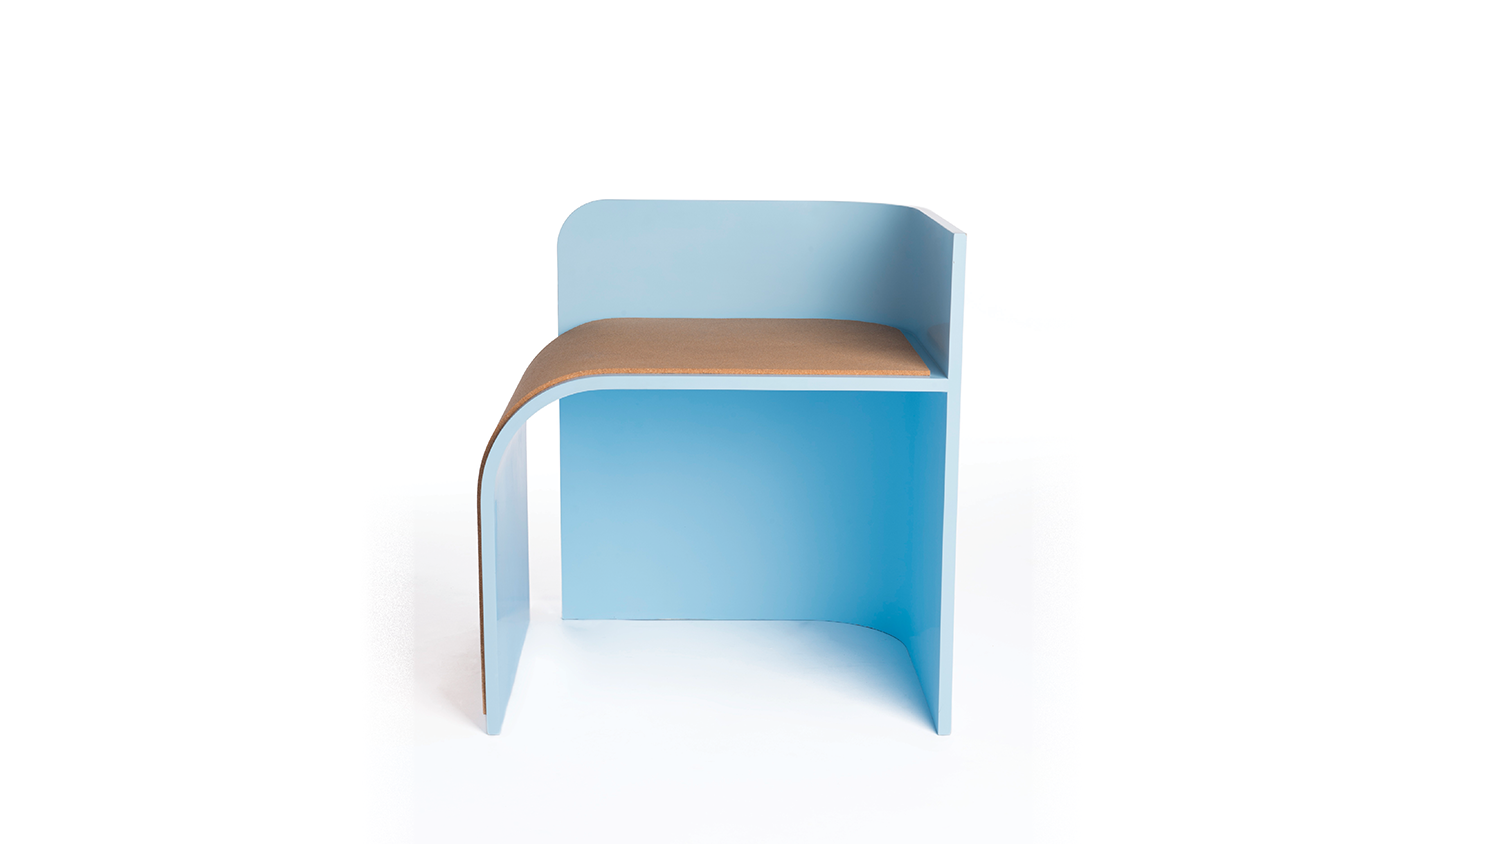 A student-designed chair